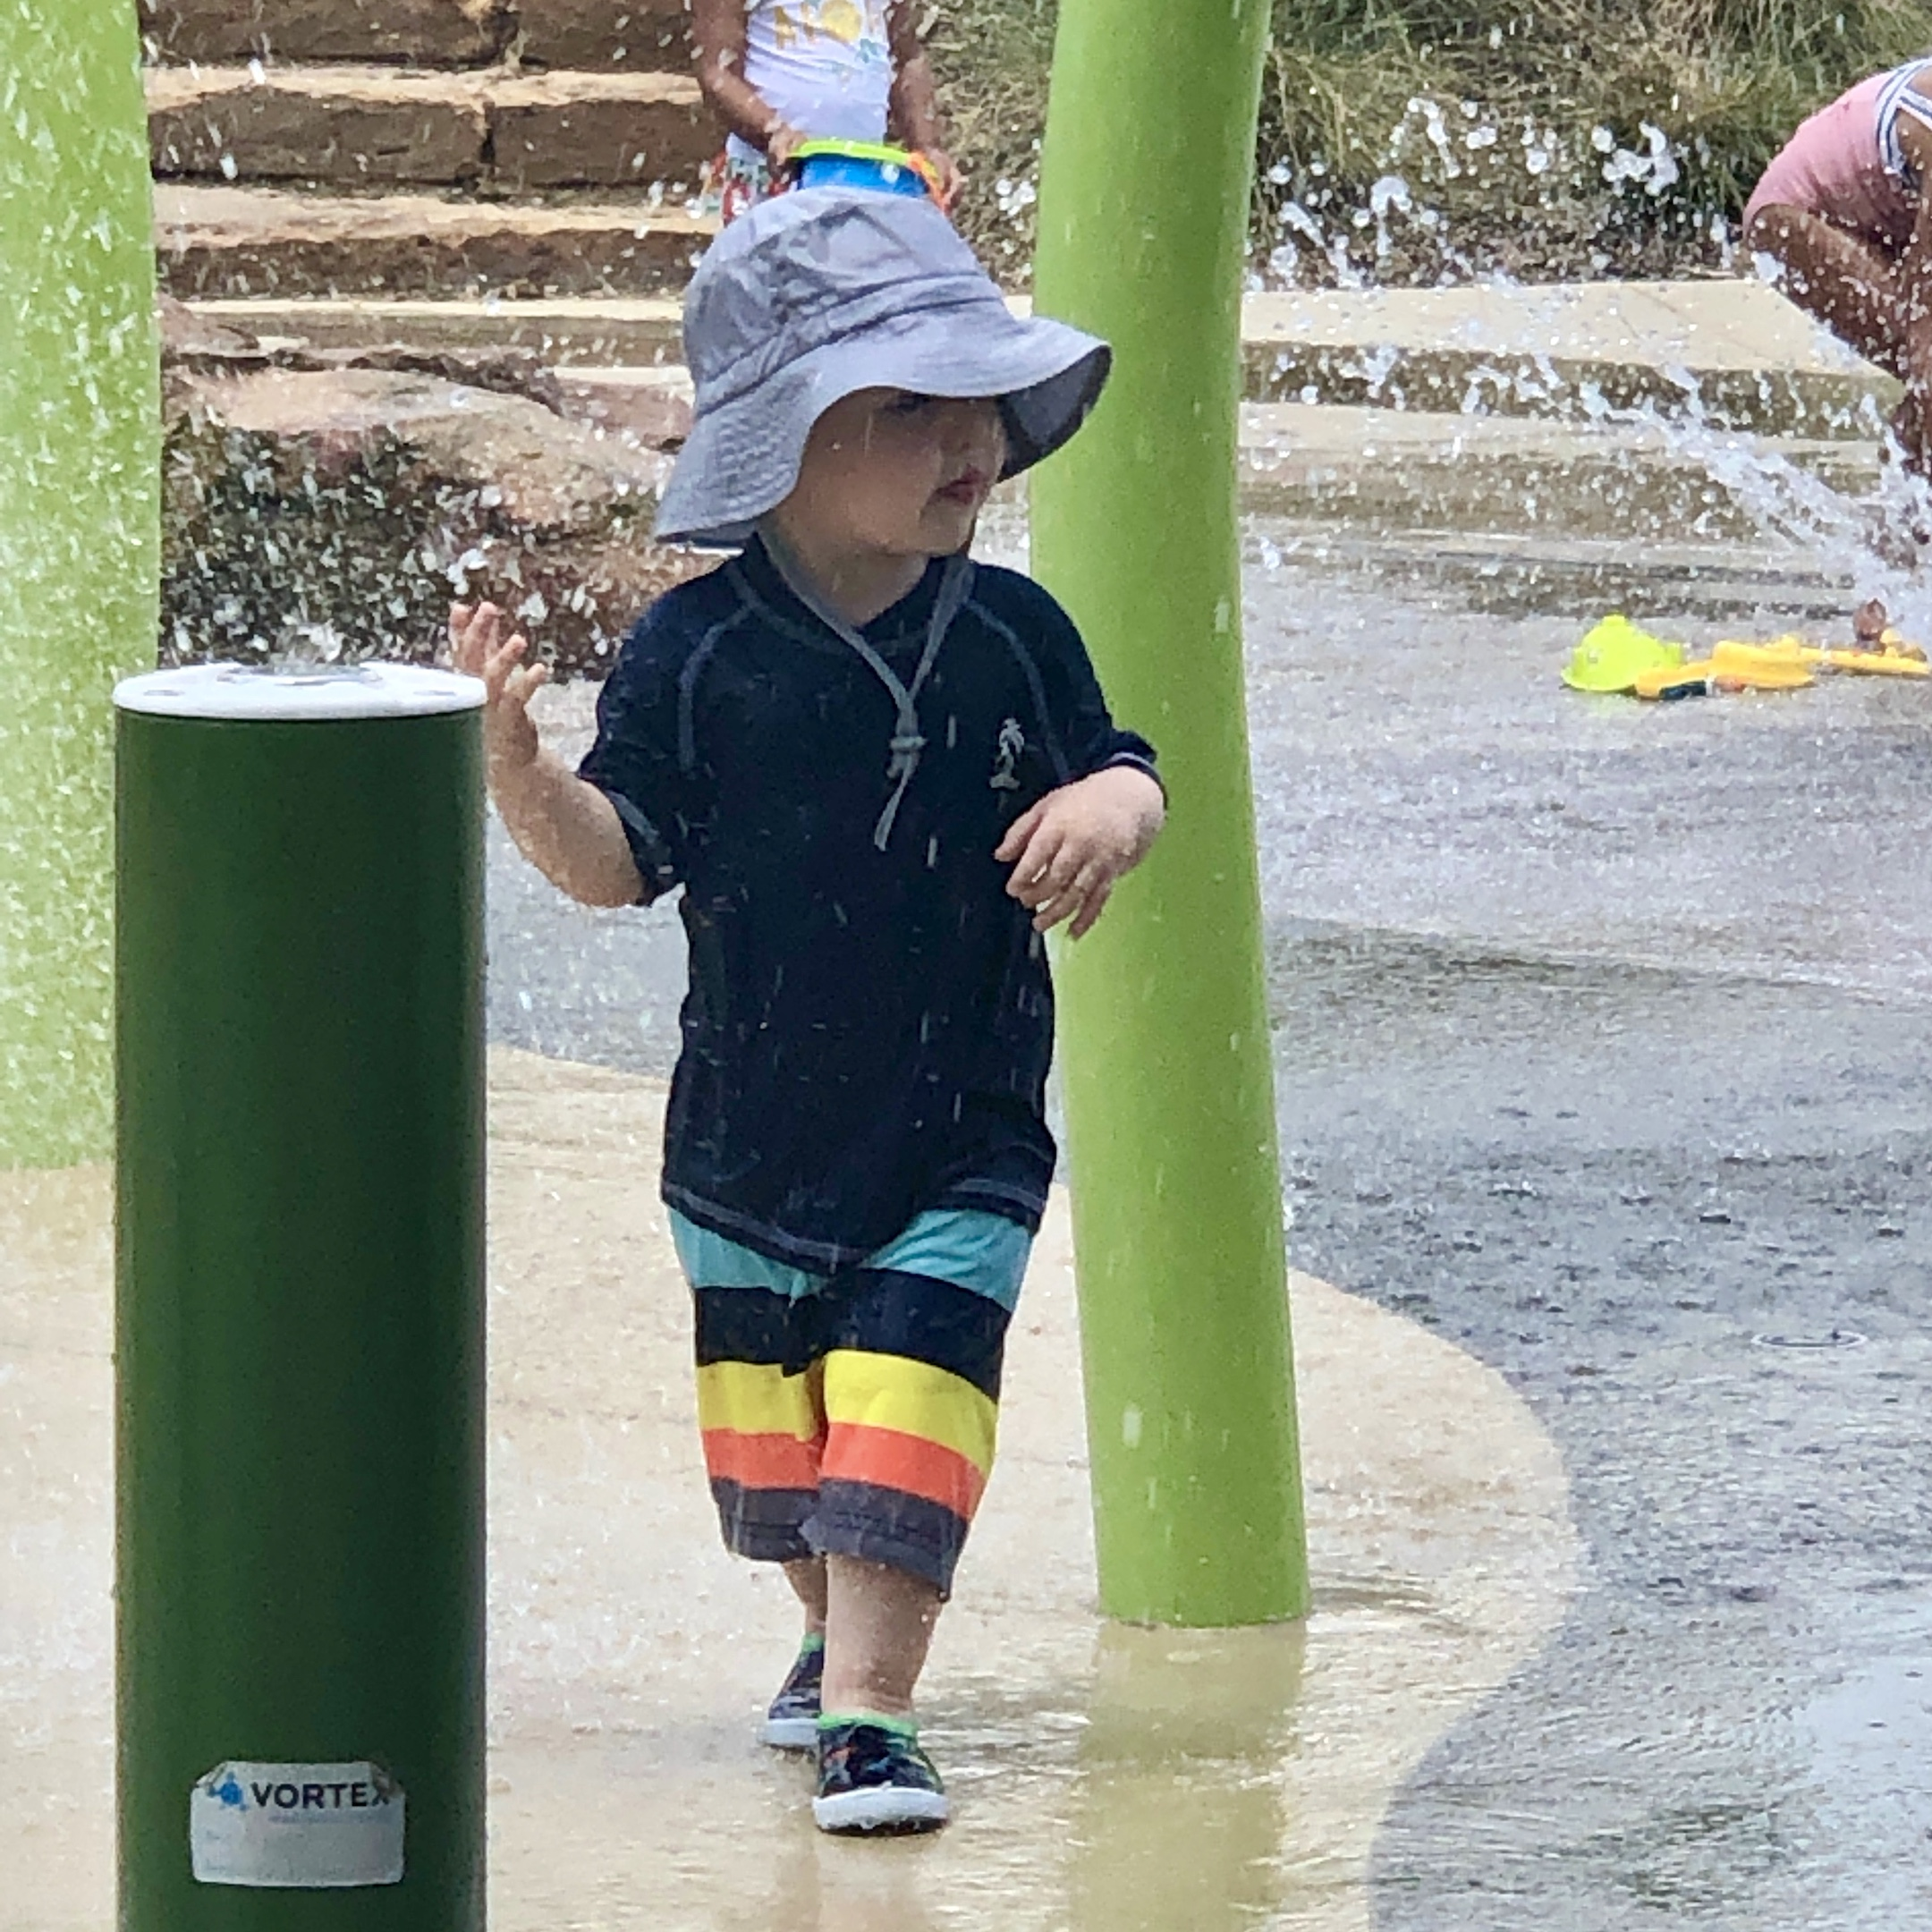 The Best Splash Pad in the Fort Worth Area